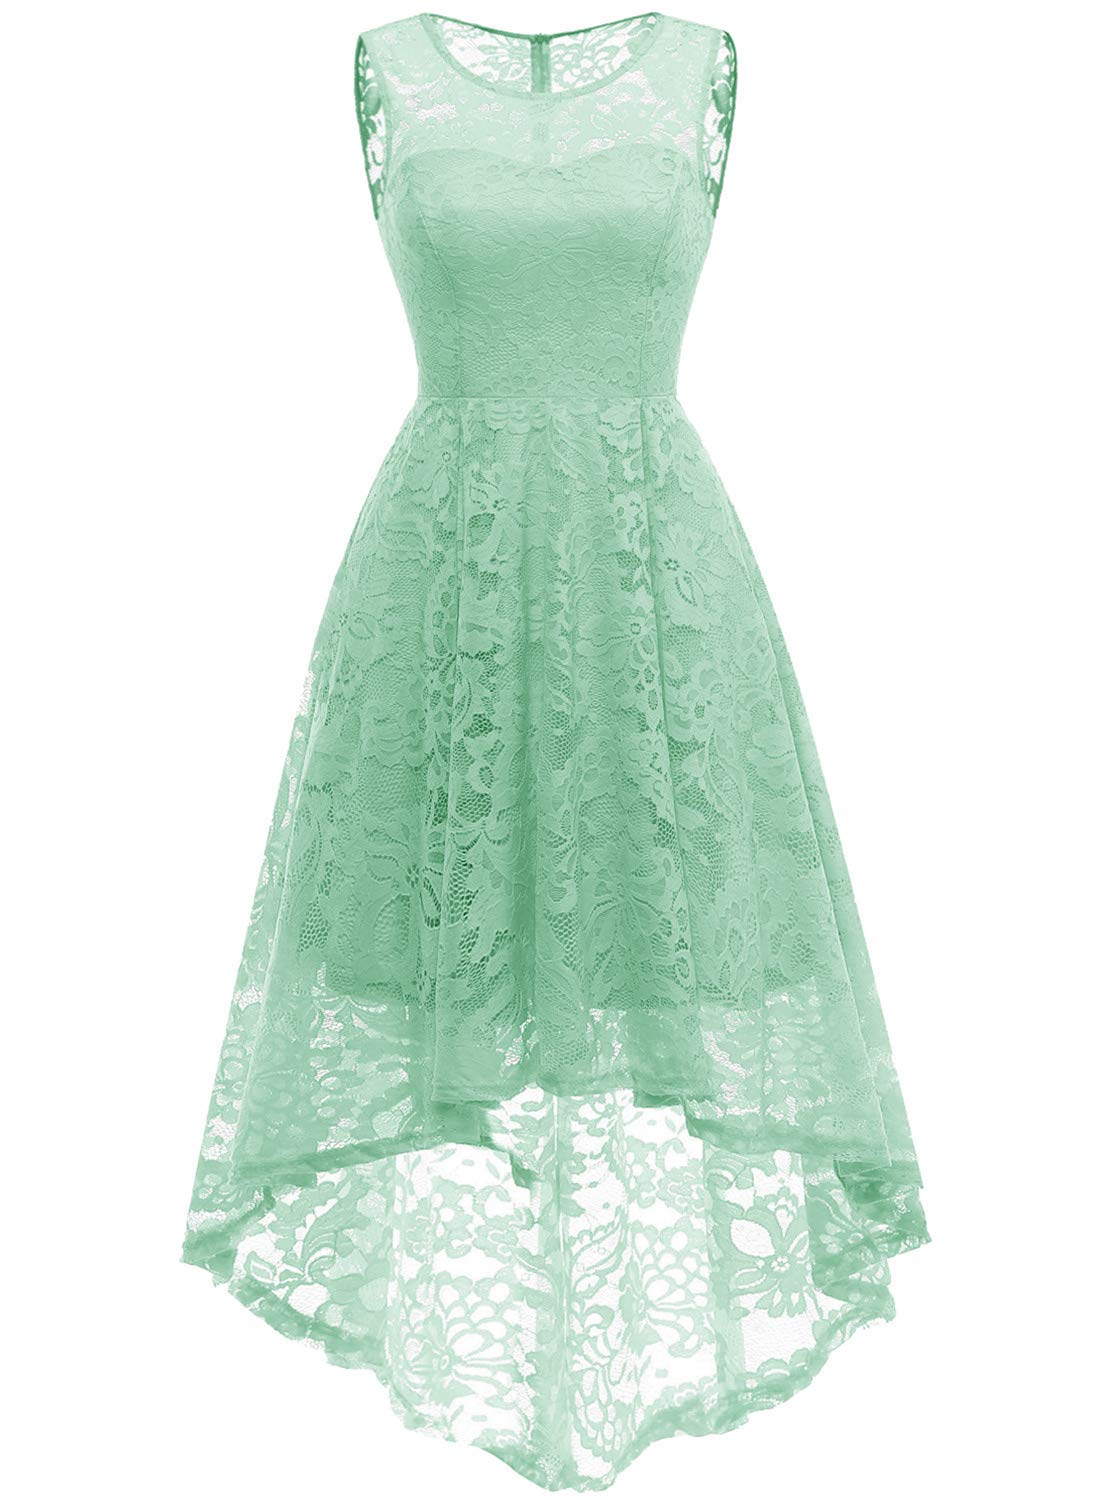 66907c19dd MUADRESS Women s Vintage Floral Lace Sleeveless Hi-Lo Cocktail Formal Swing  Dress product image